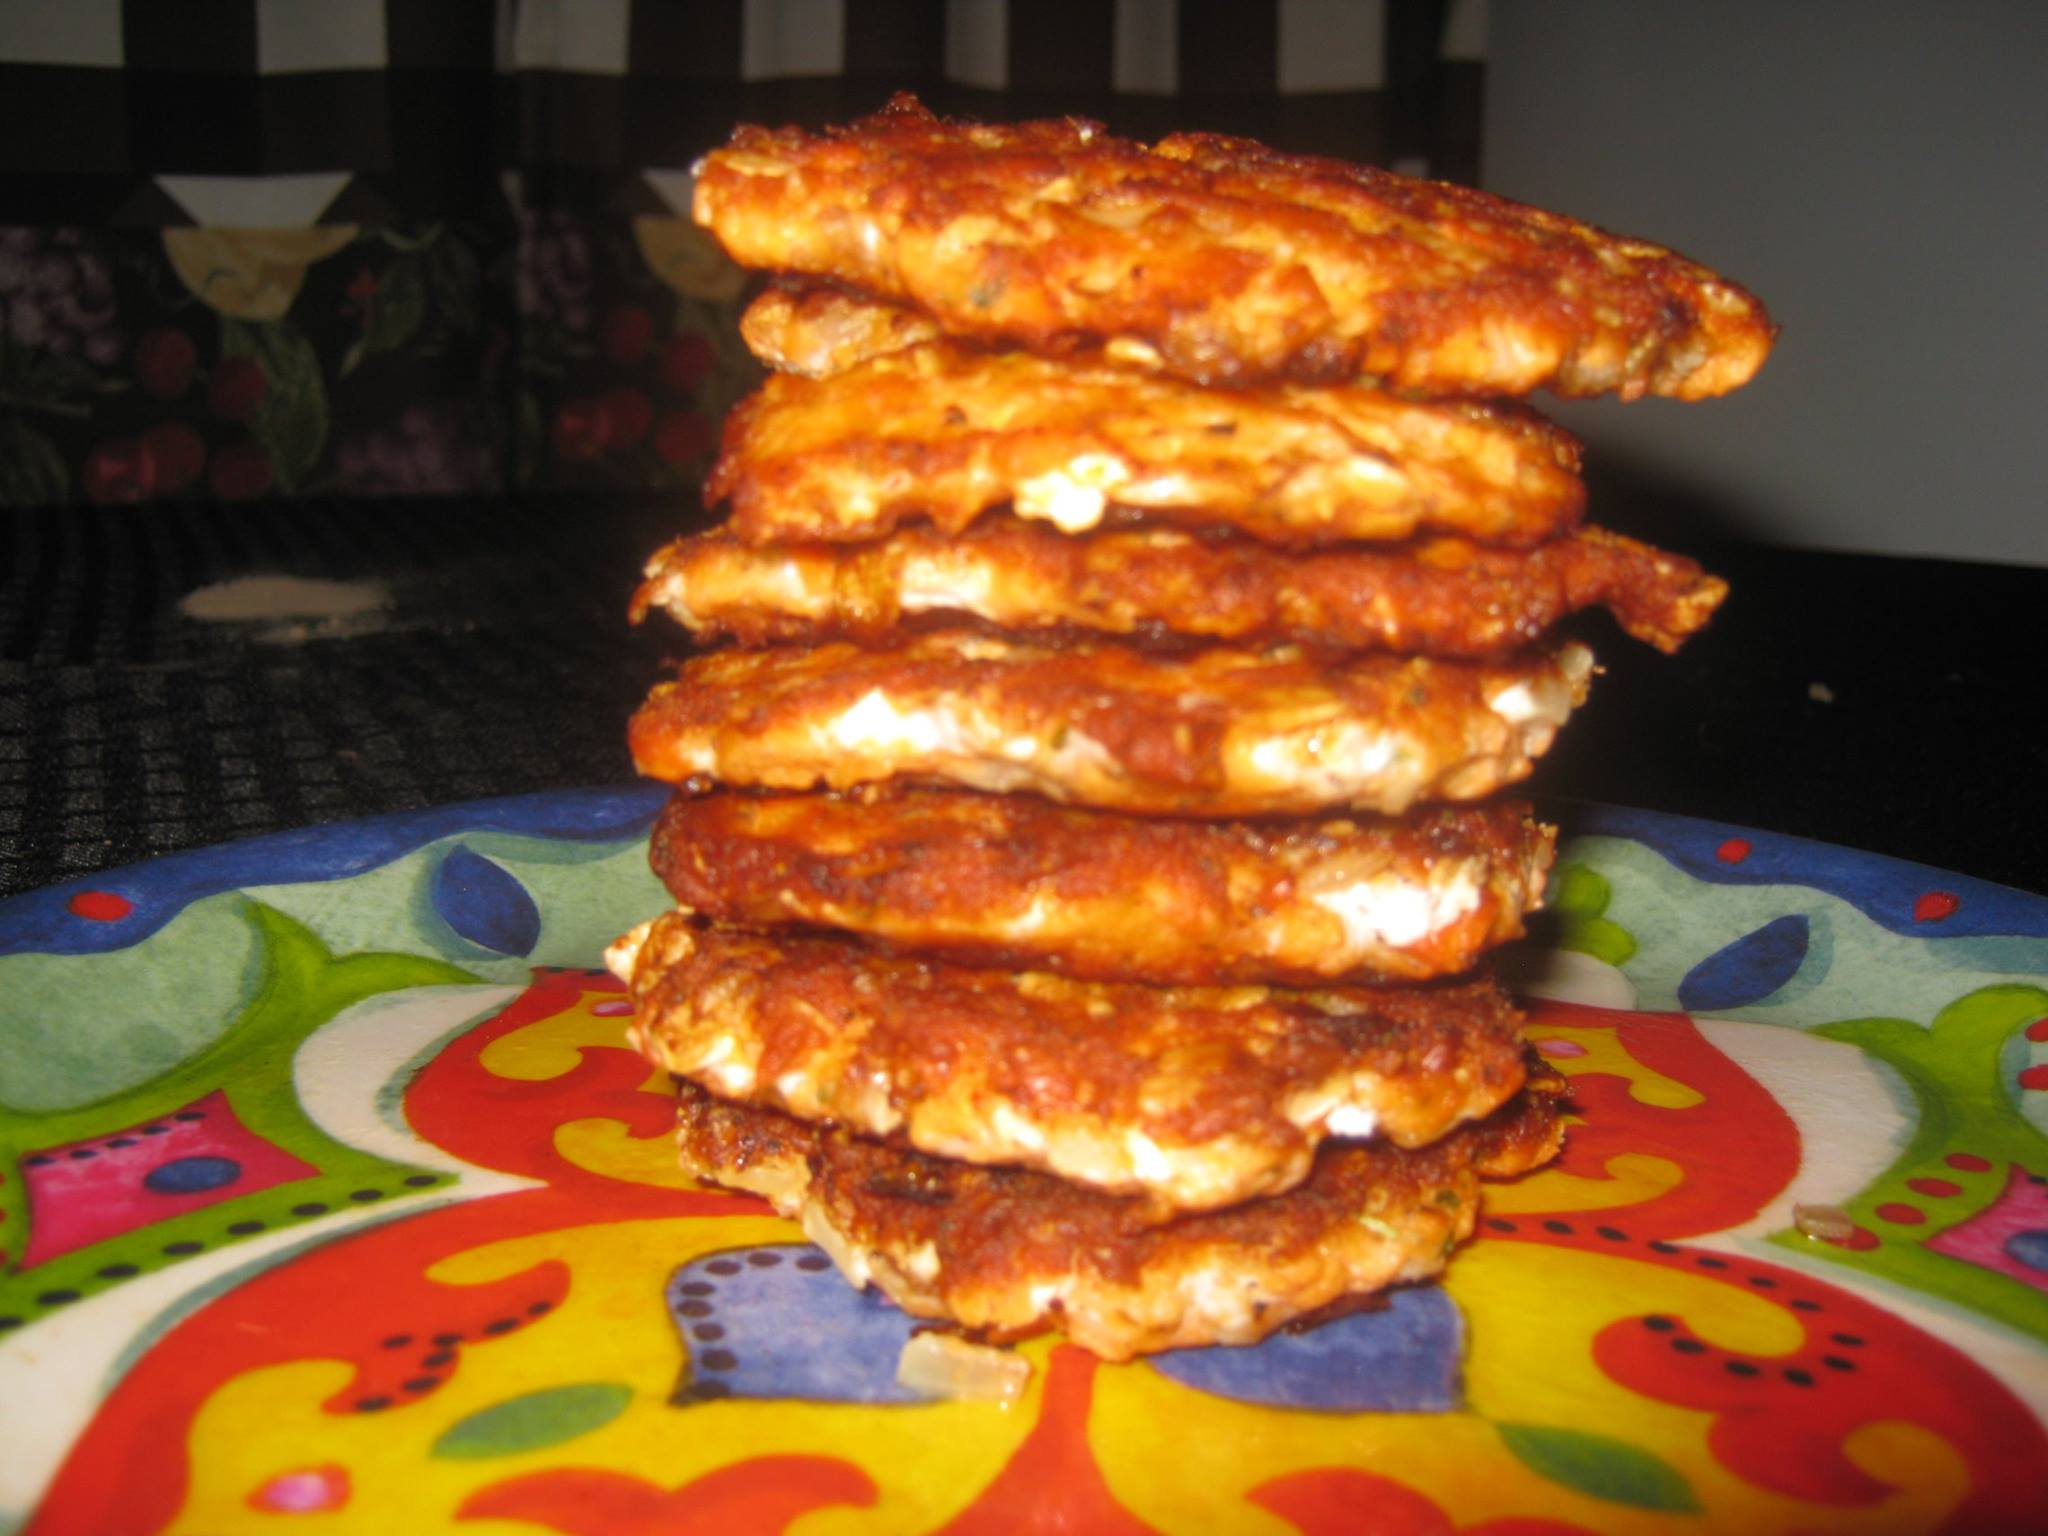 Salmon patties stacked on a plate